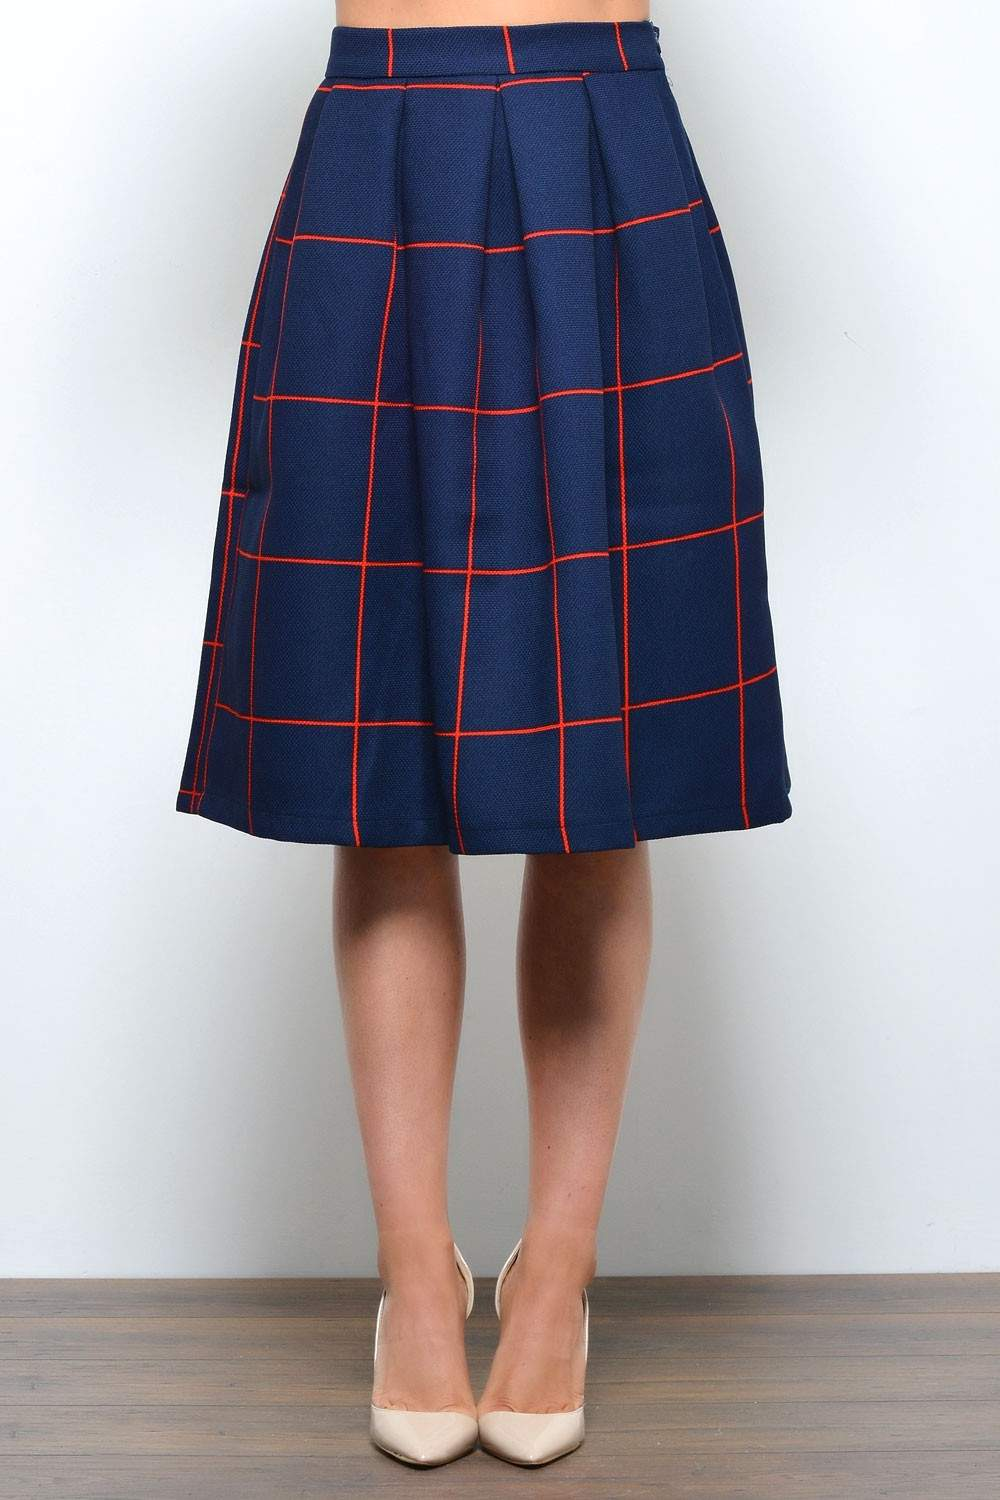 check pleated skirt iclothing